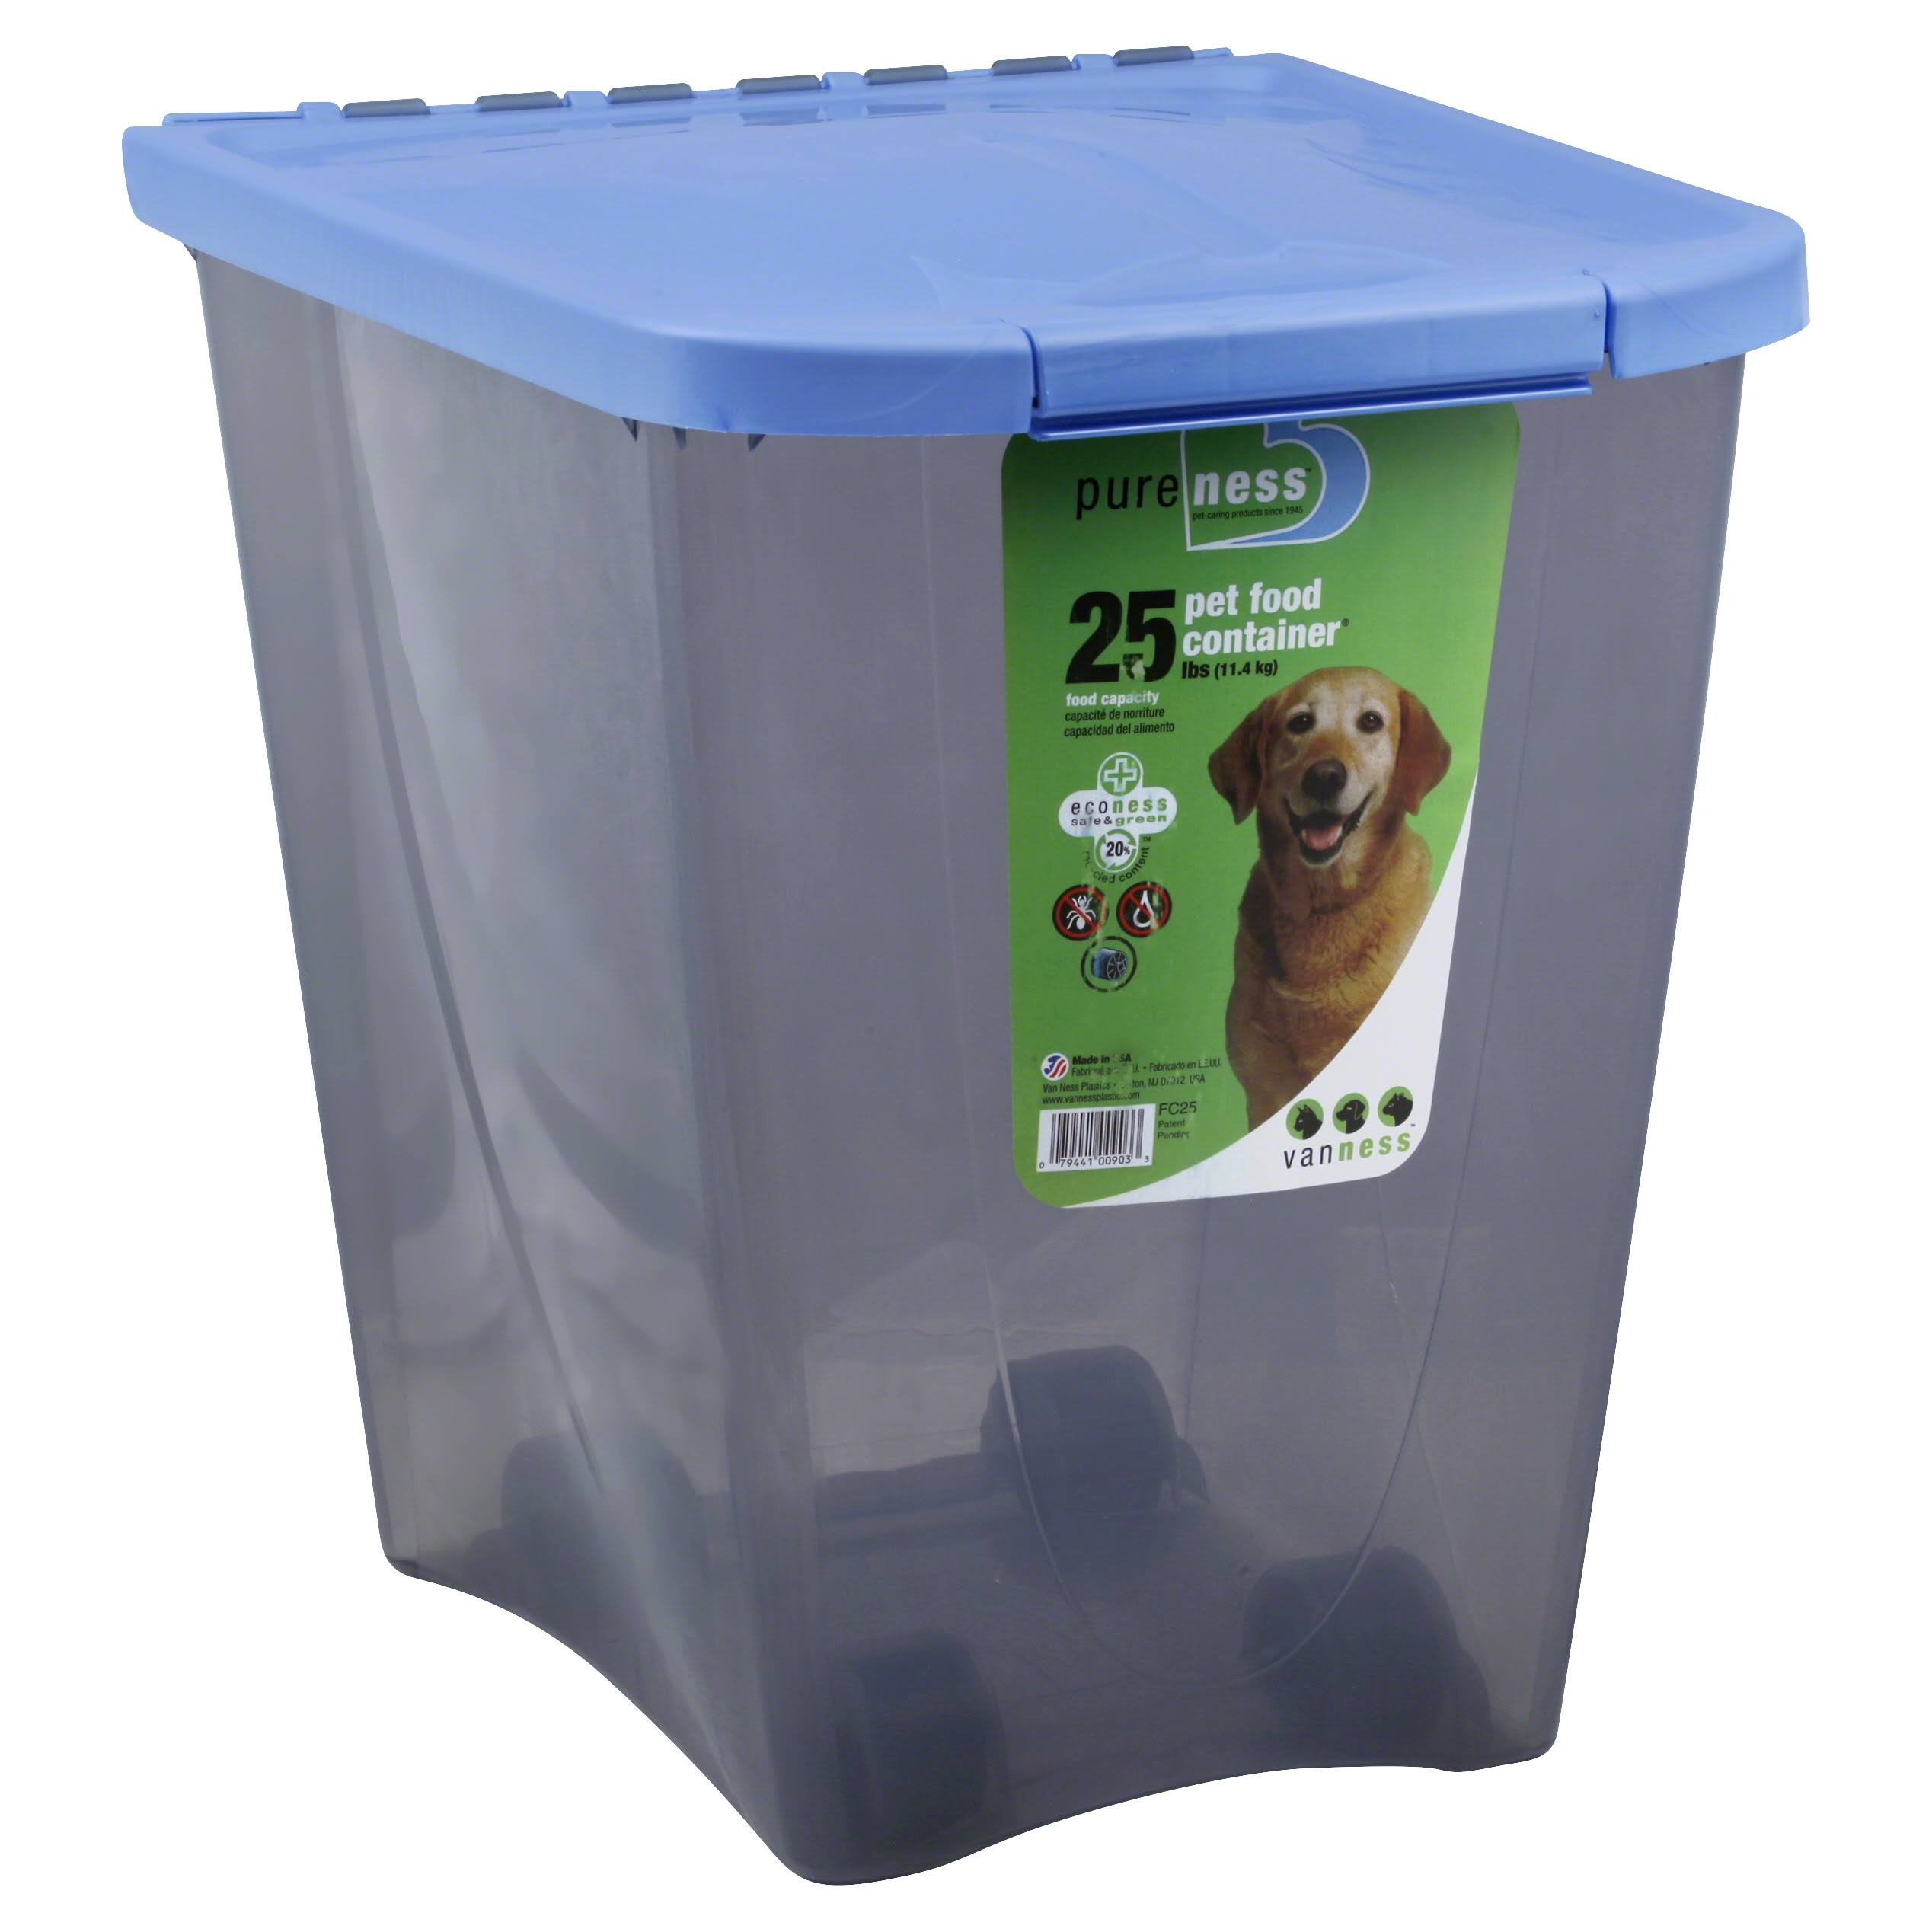 Van Ness Pet Food Container